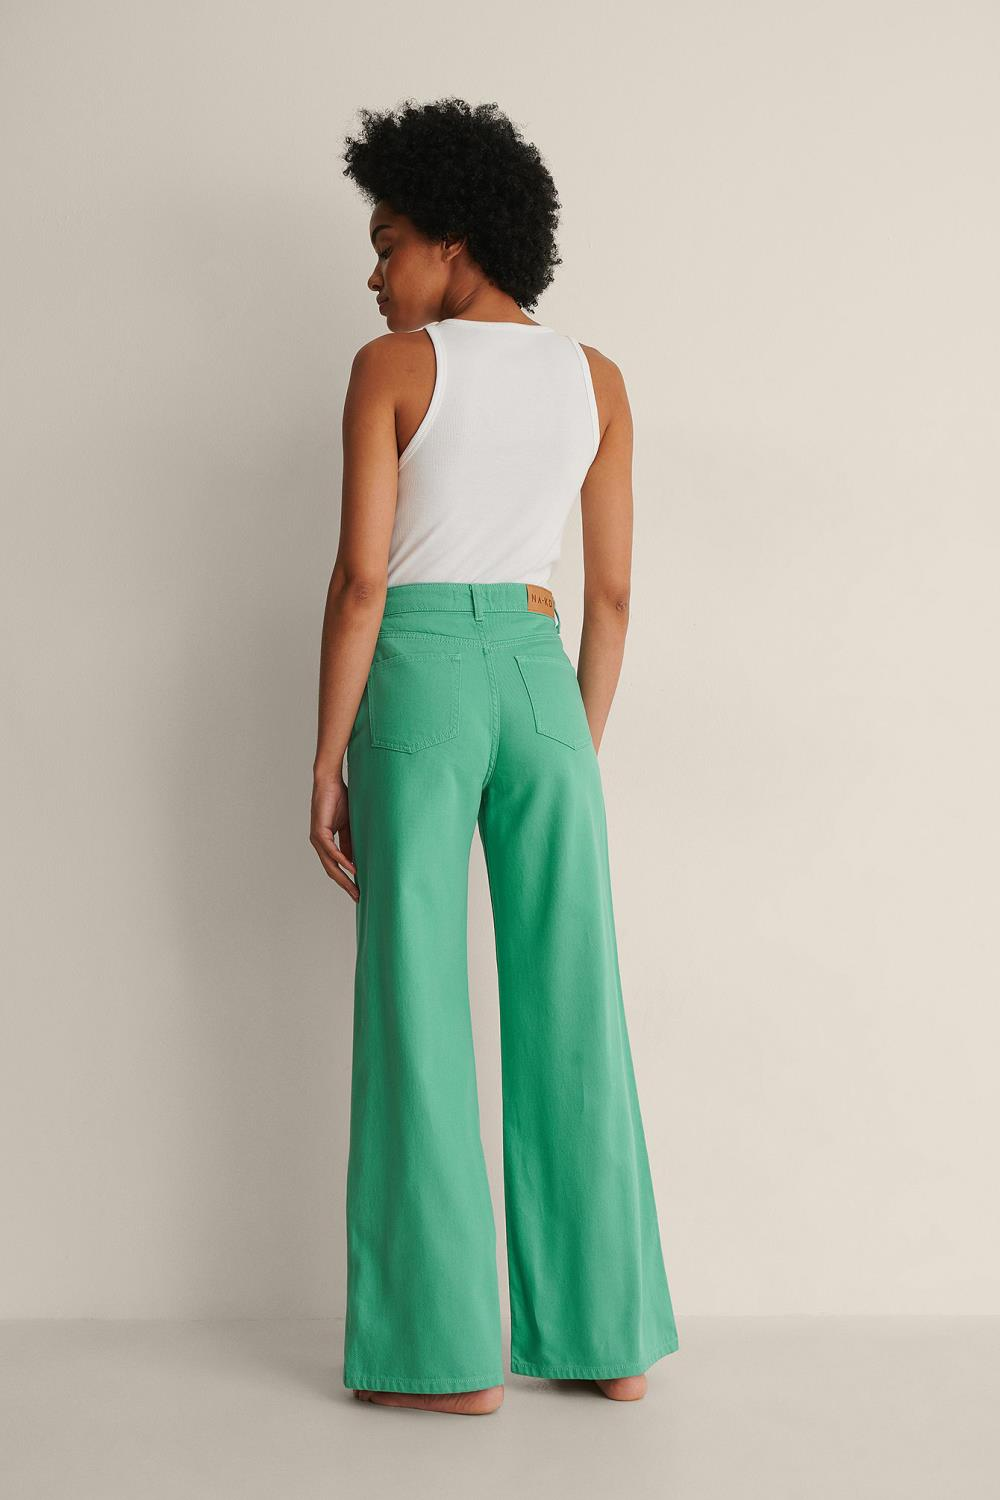 gallery-4225-for-1018-007993-green